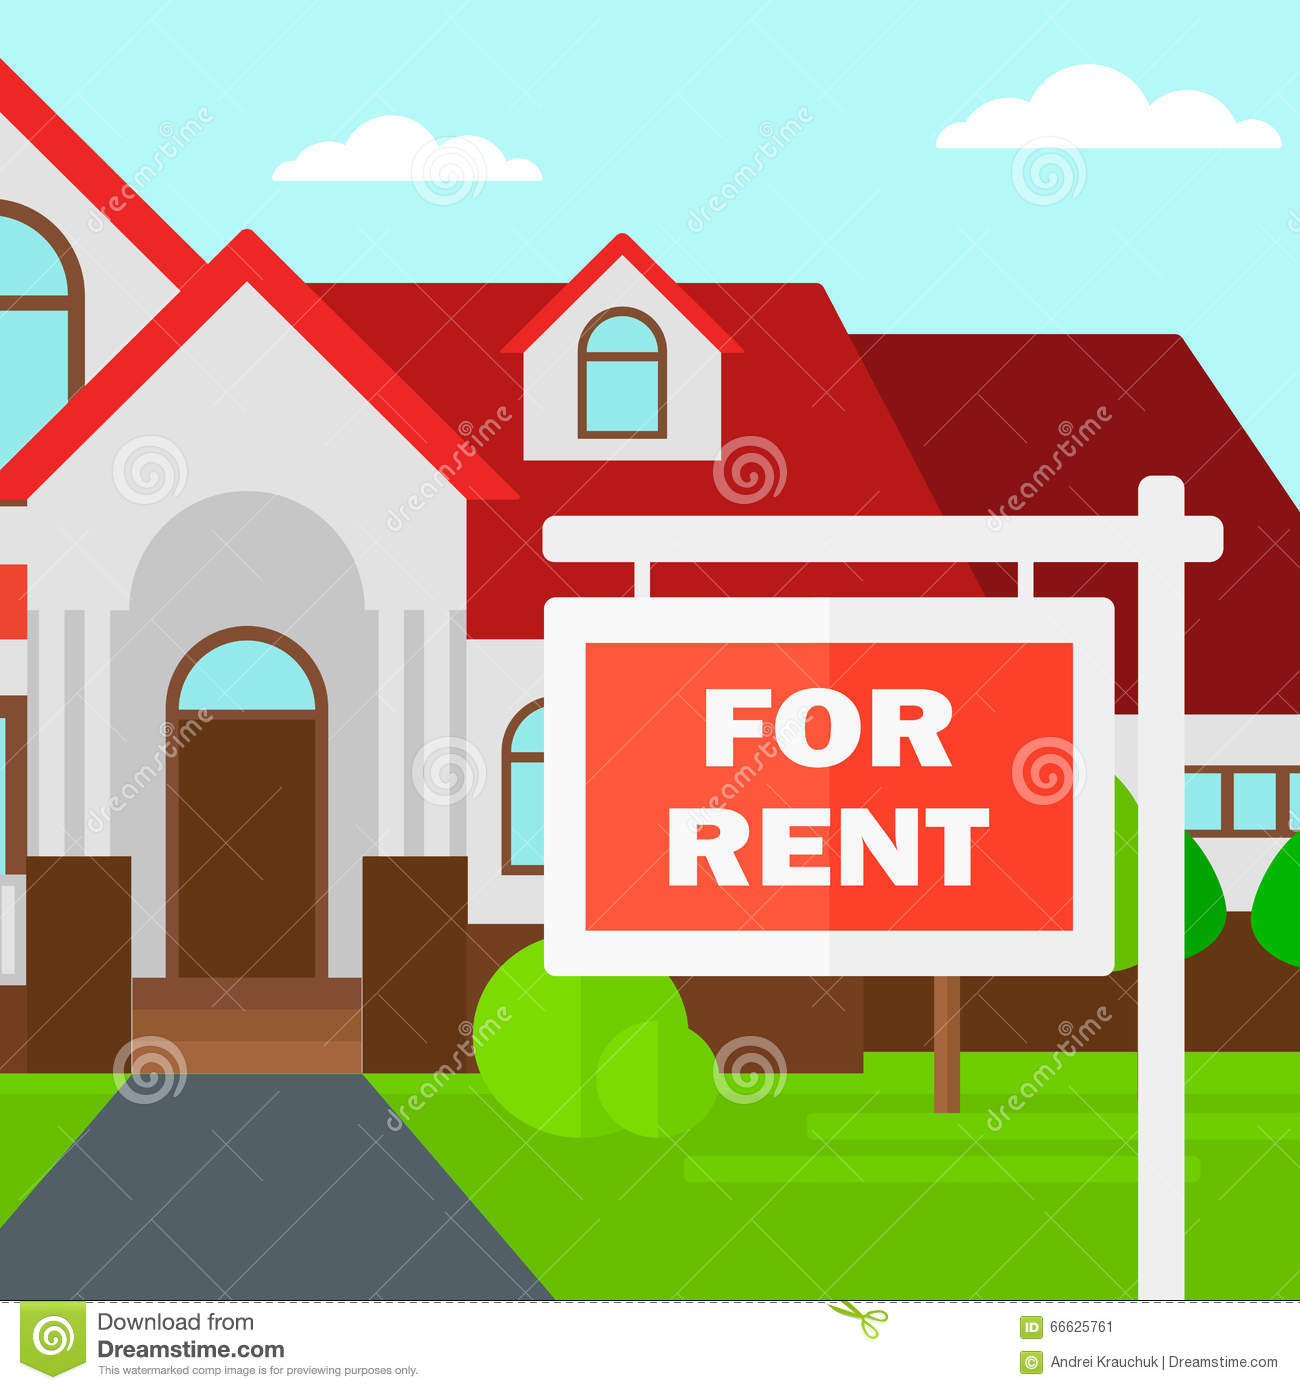 House Rent Com: Background Of House With For Rent Real Estate Sign. Stock